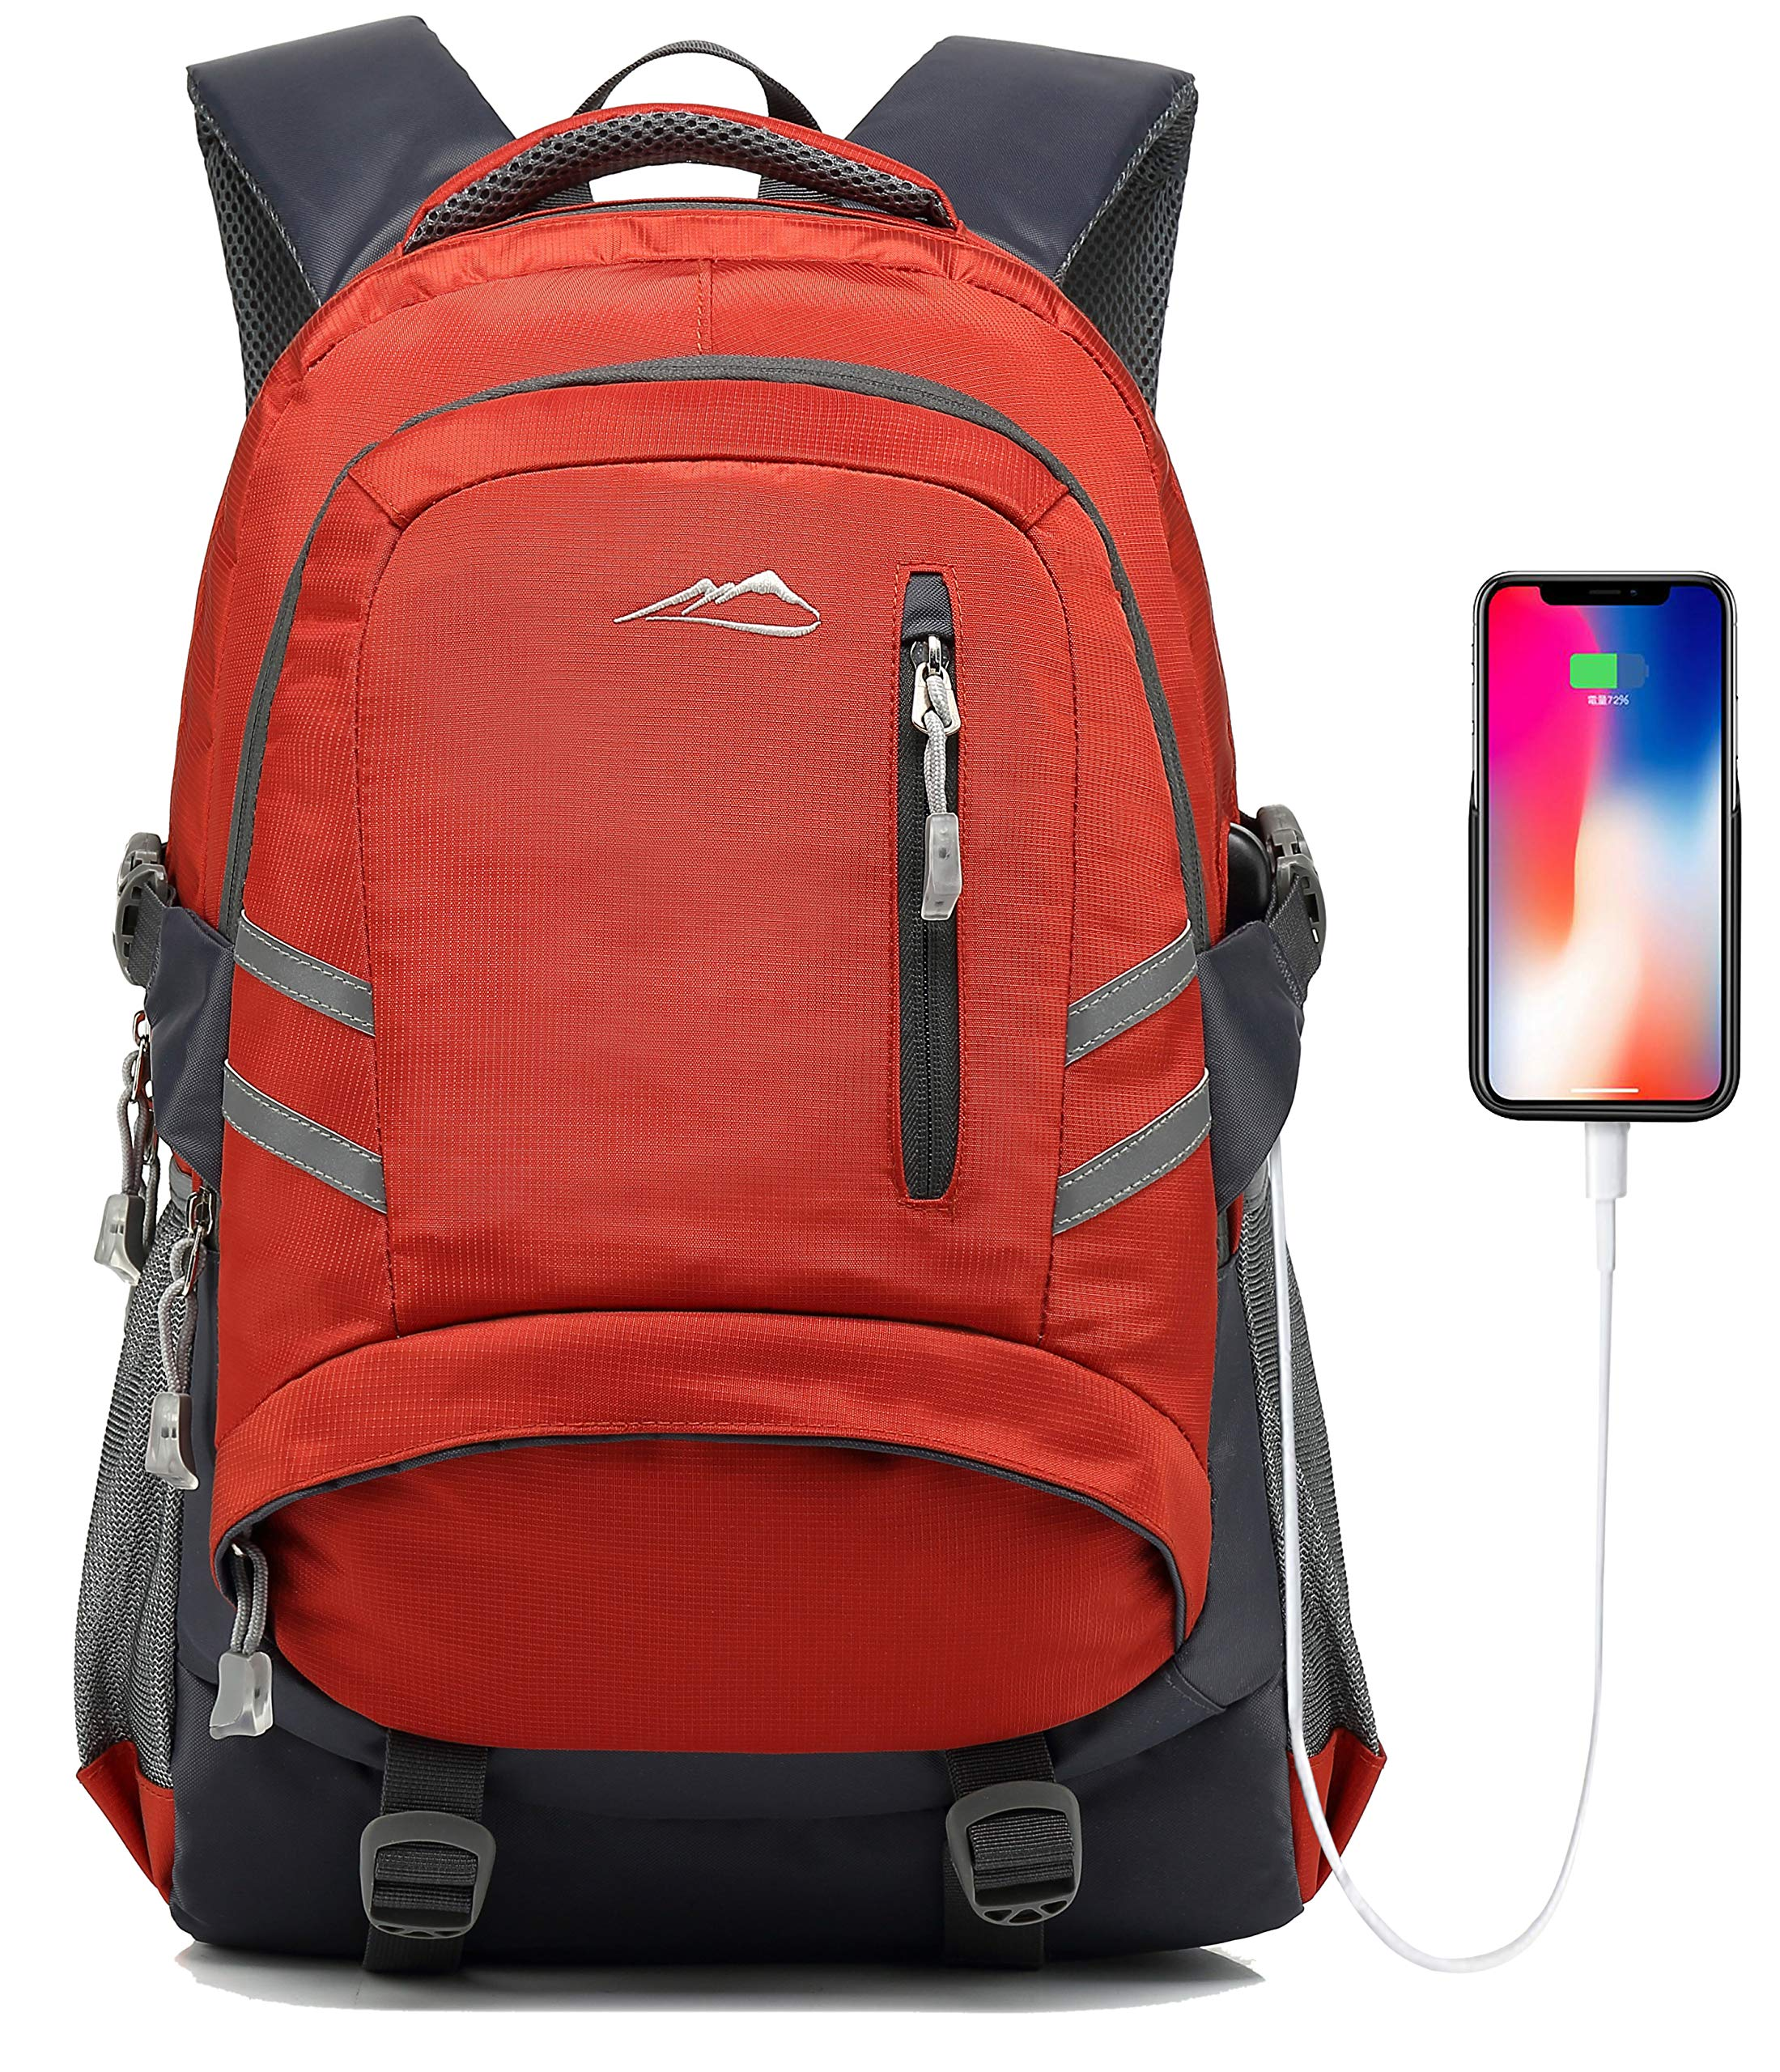 Backpack for School College Student Bookbag Business Laptop Travel with USB Charging Port Chest Luggage Straps Night Light Reflective (Orange) by Sandsuced